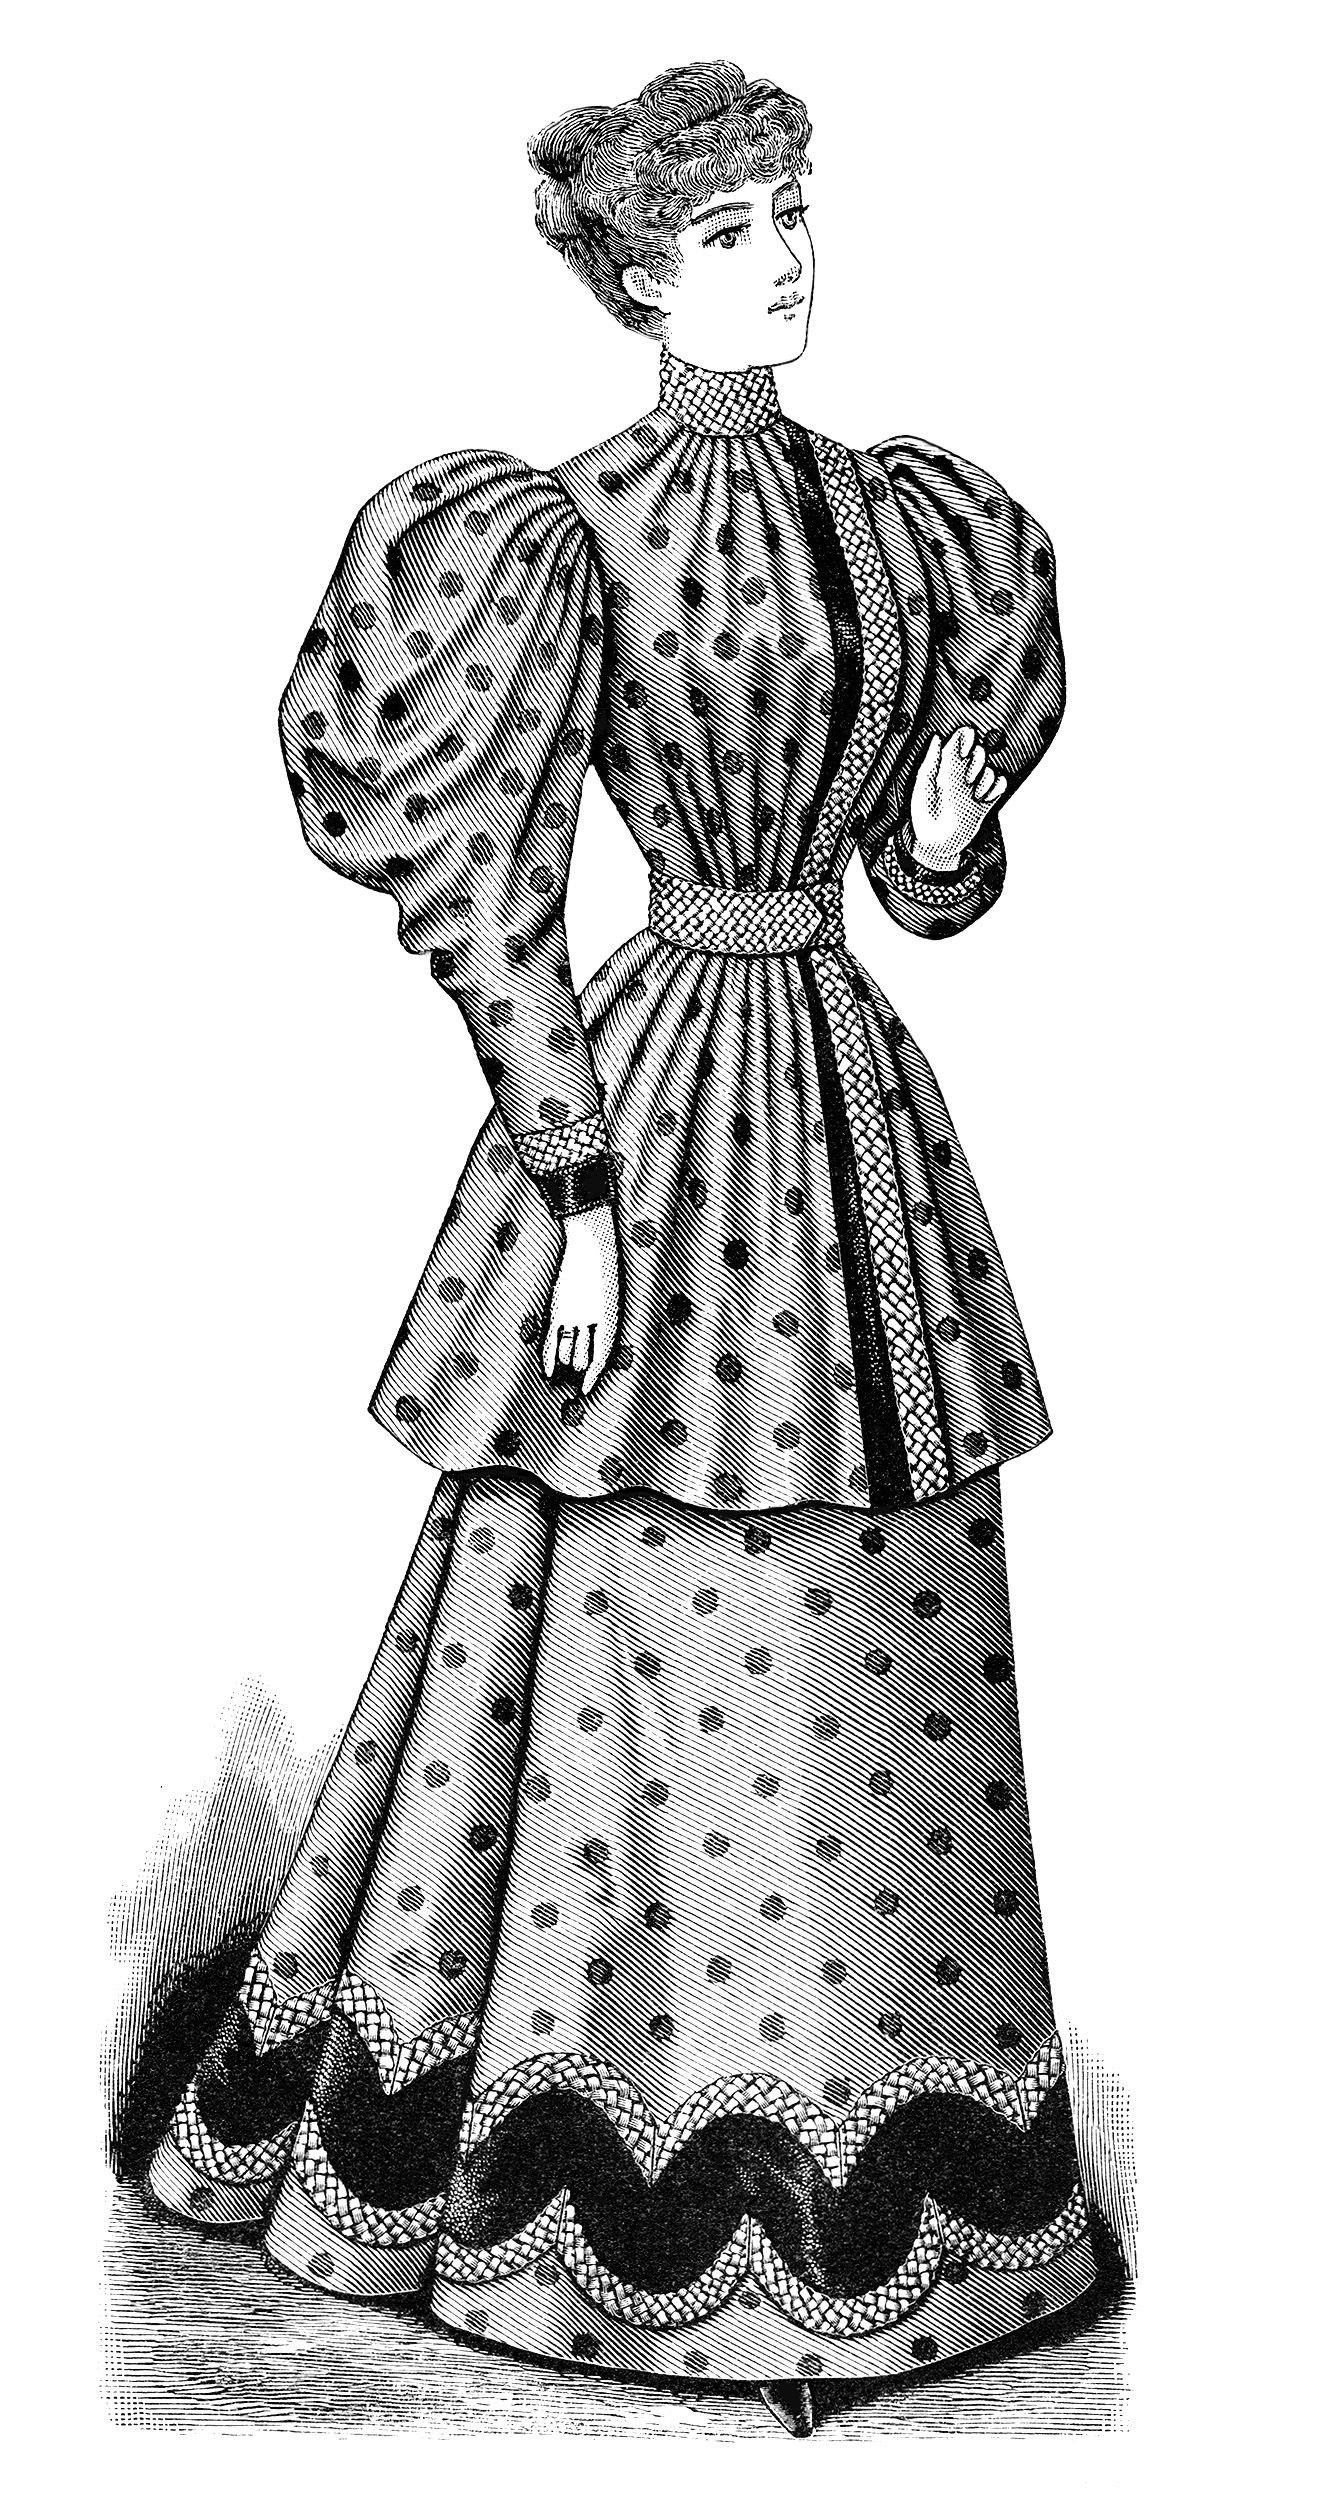 Clip Art Old Fashioned Polka Dot Dress Illustration Black.